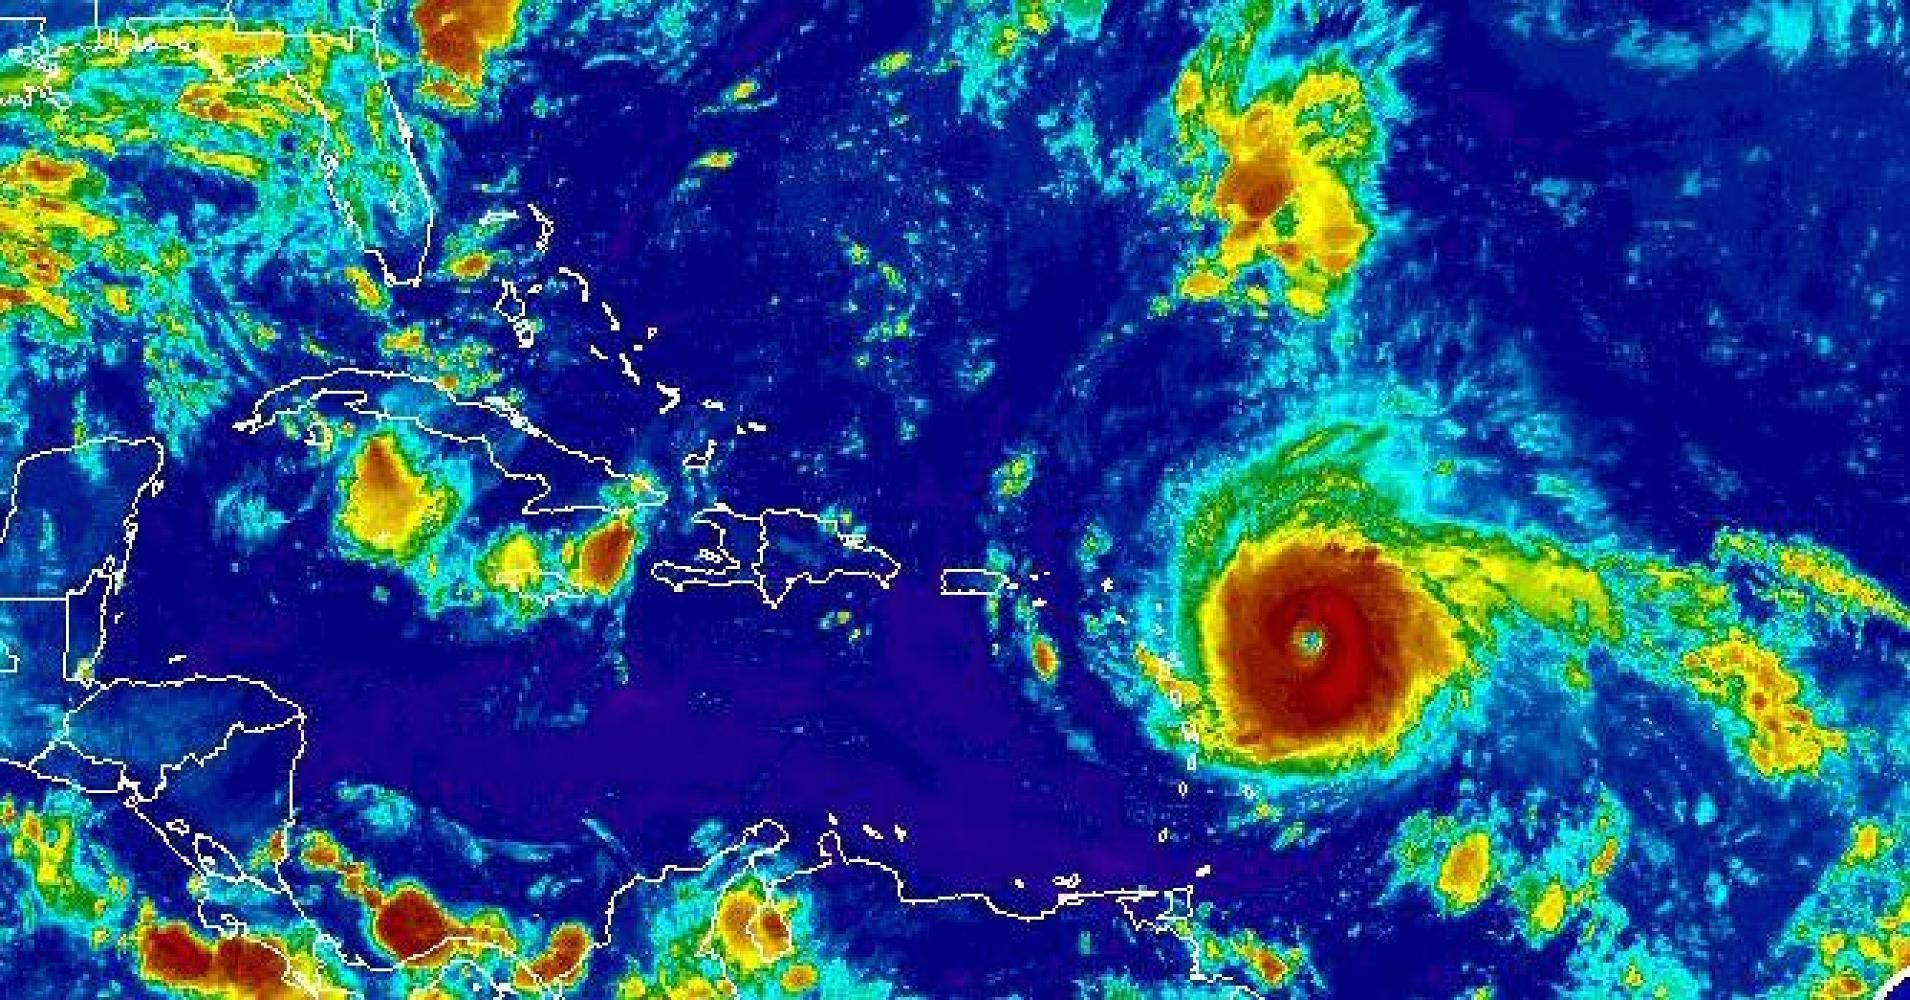 Irma Harvey Reveal Massive National Security Risks Climate Change Solutions Satellite Image Eye Of The Storm